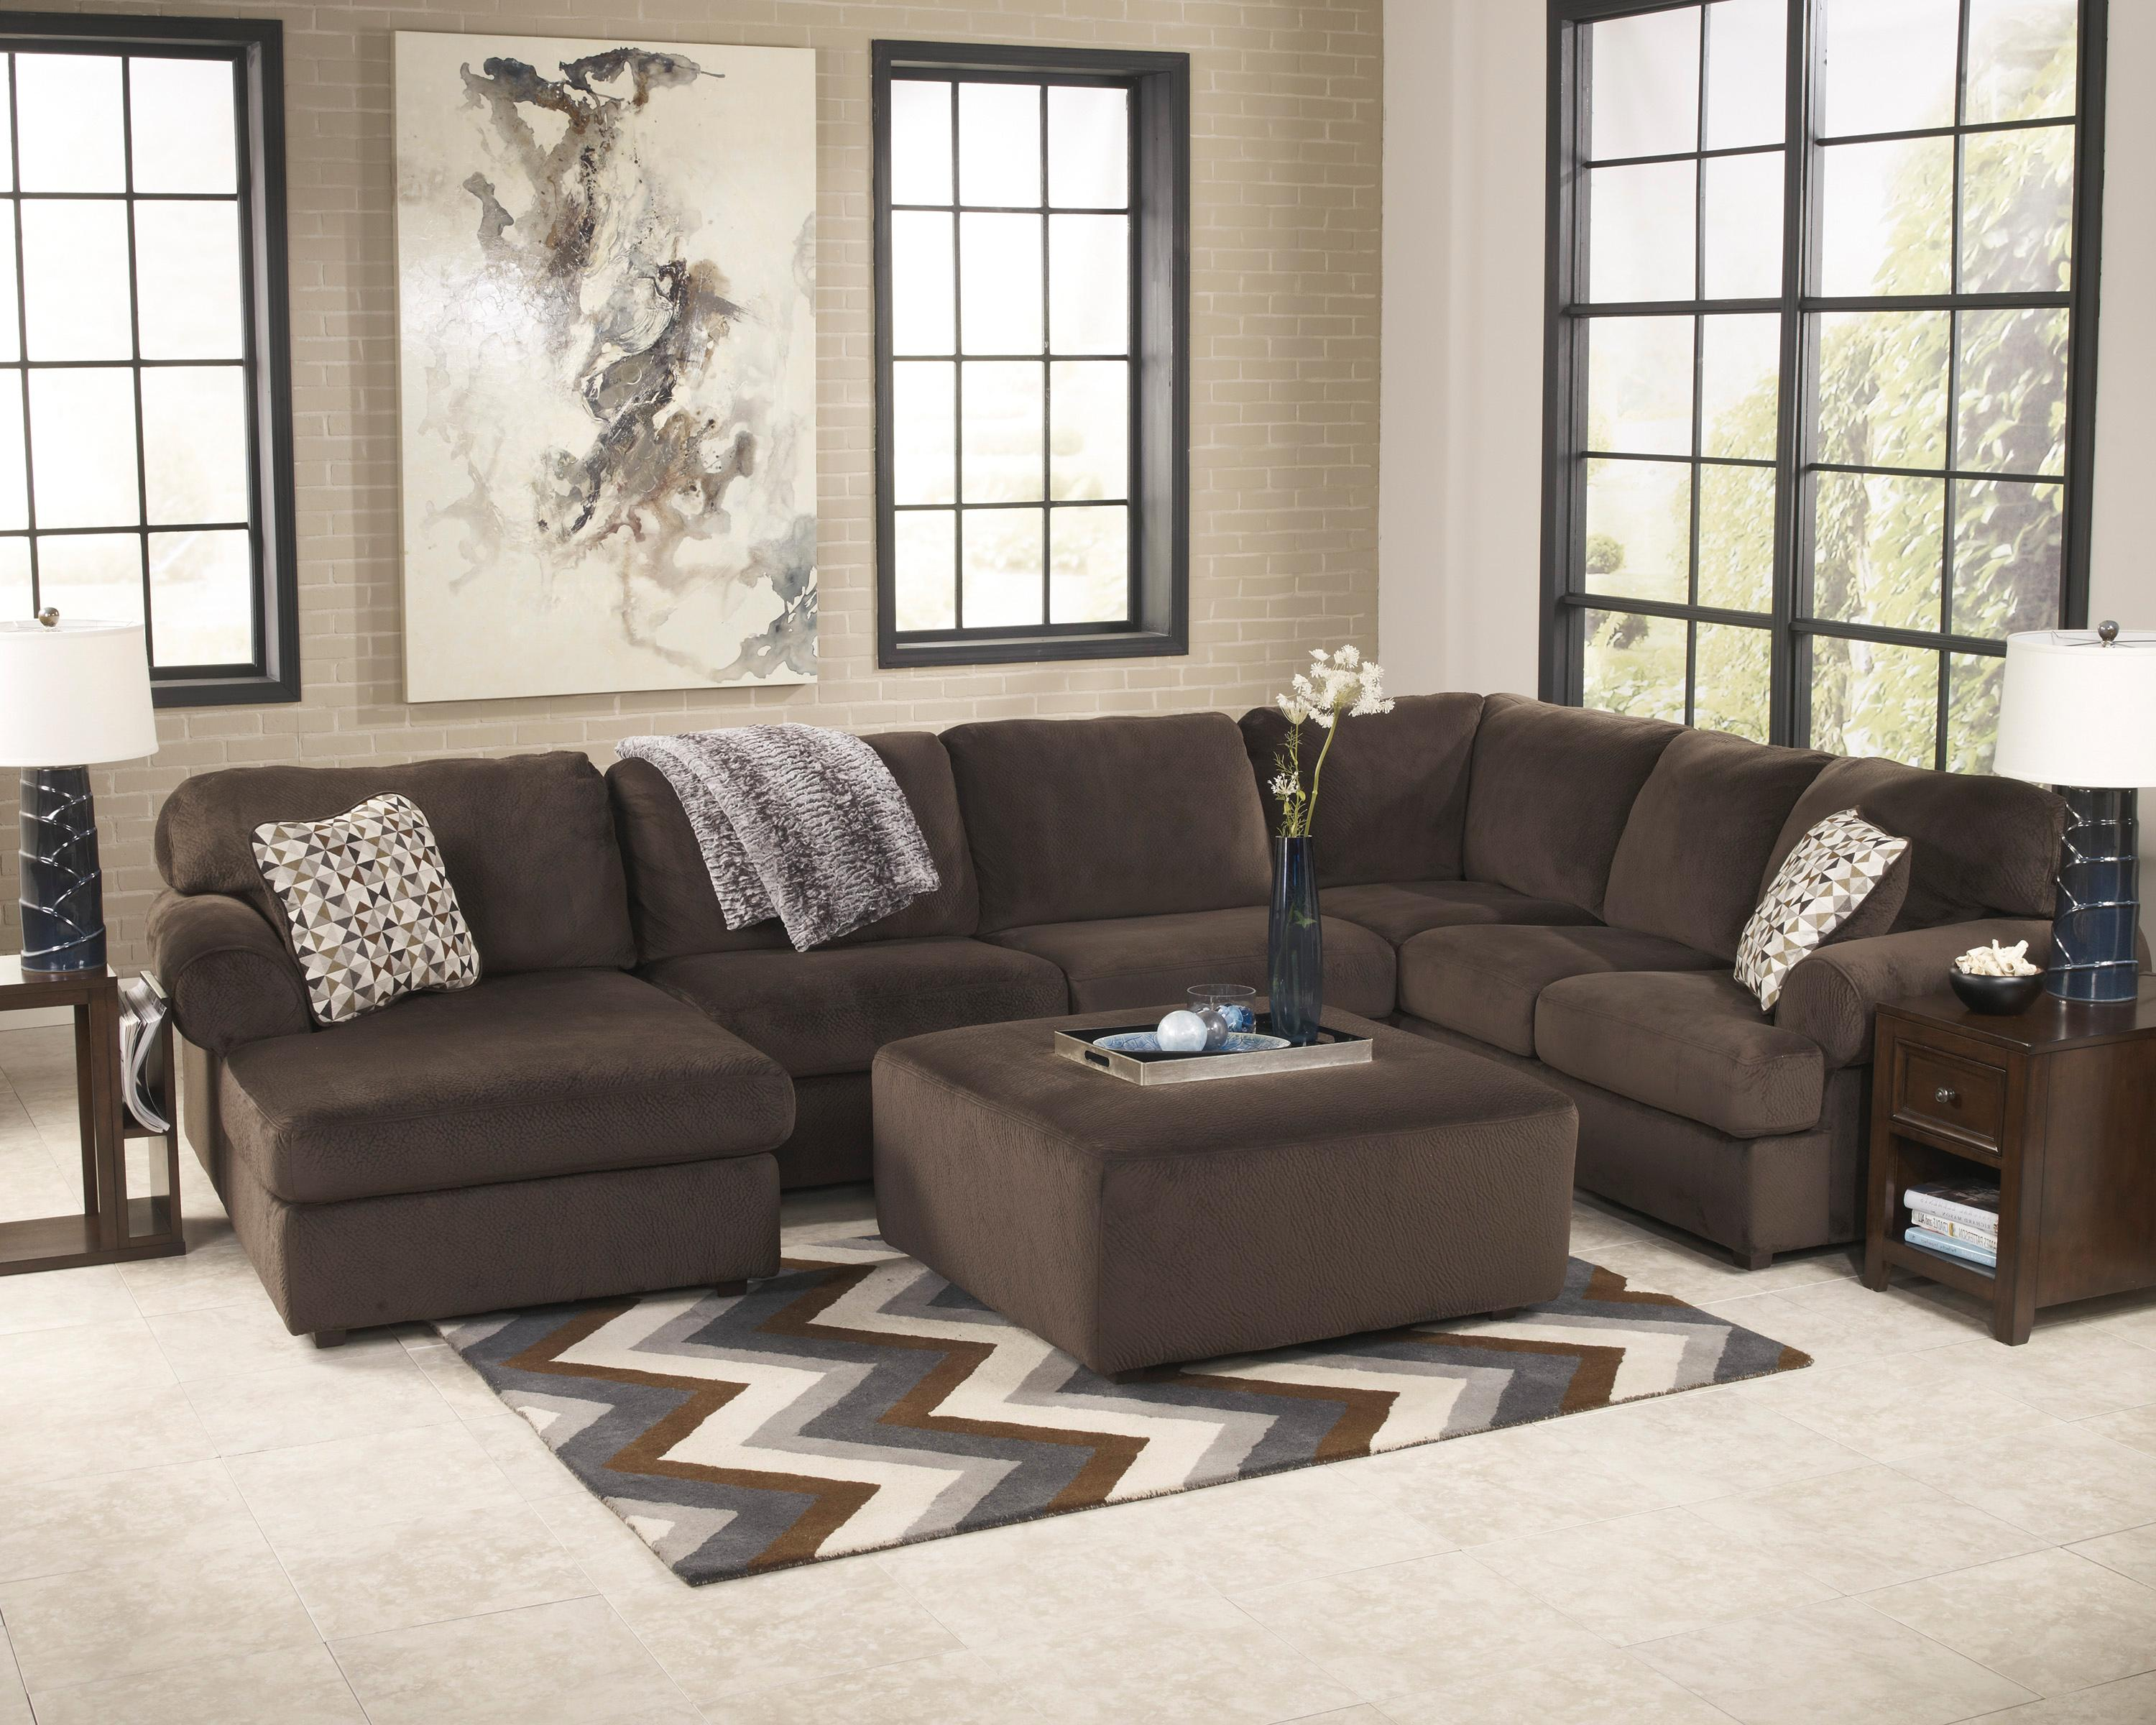 Signature Design by Ashley Jessa Place  - Chocolate Stationary Living Room Group - Item Number: 39804 Living Room Group 2